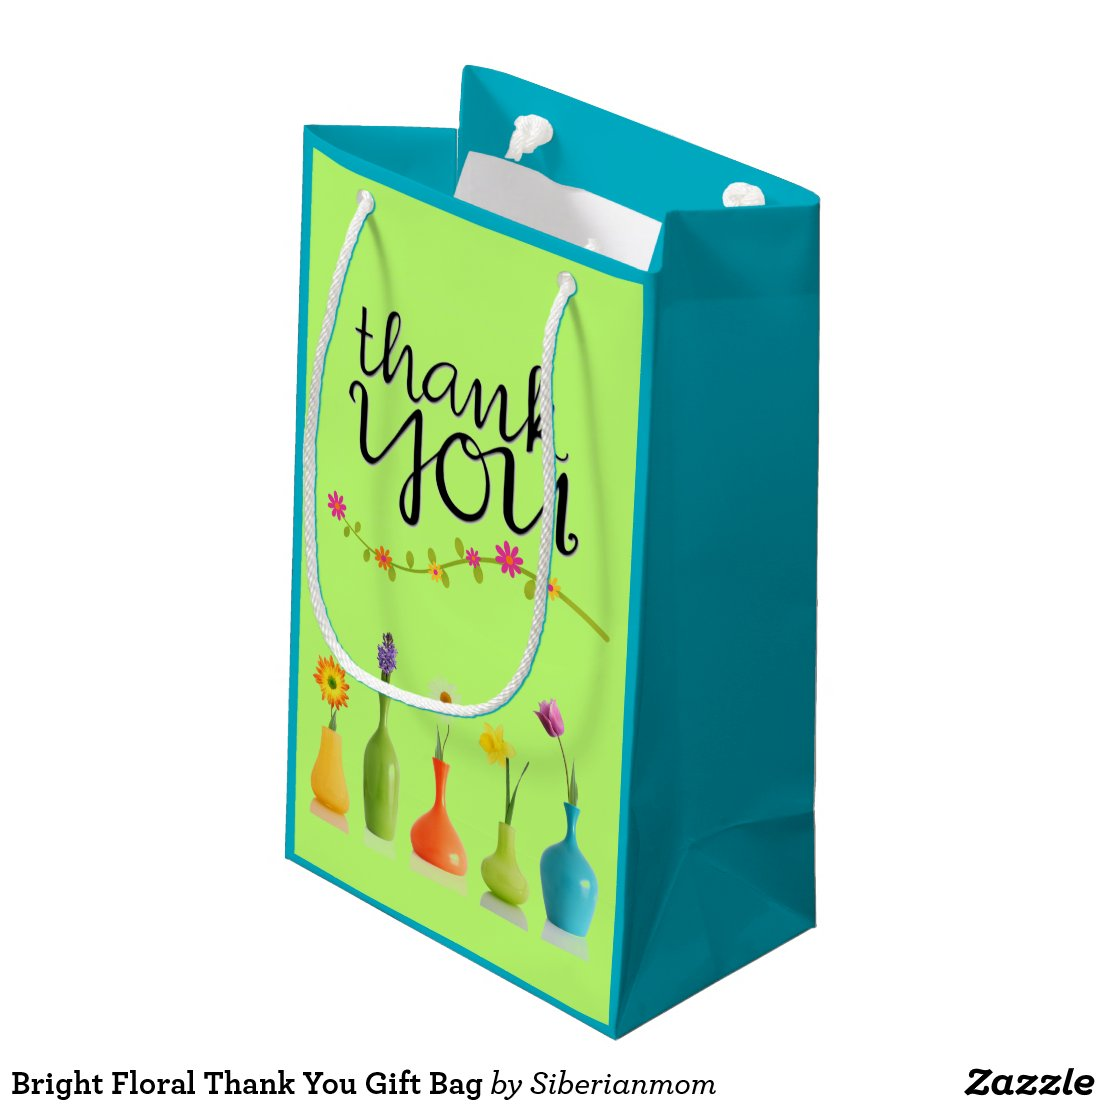 Bright Floral Thank You Gift Bag